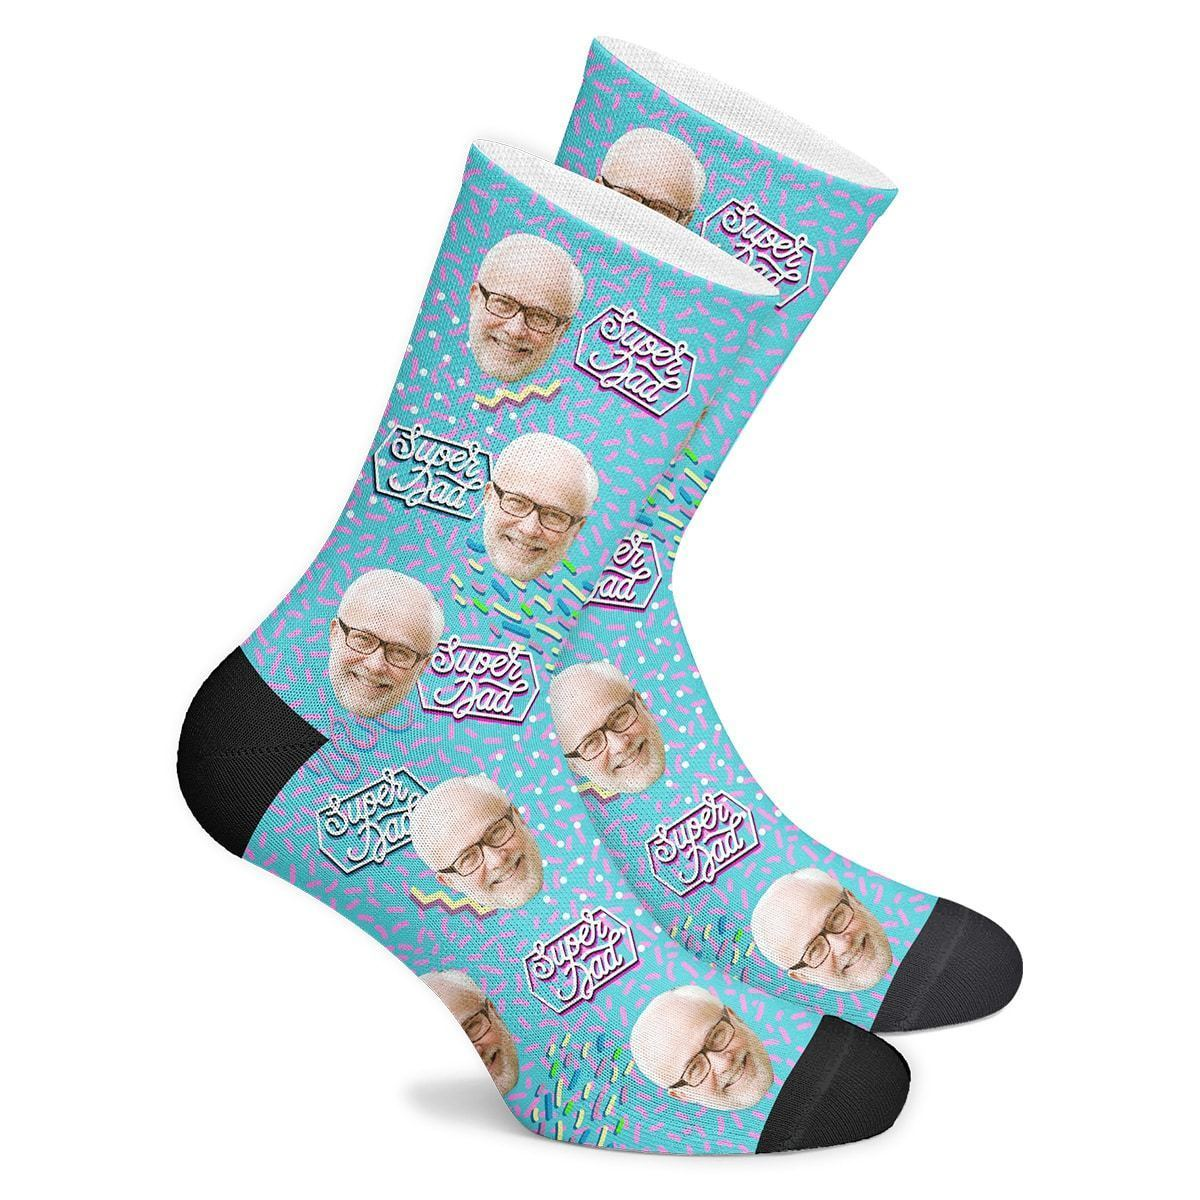 Super Dad Retro Personalisierte Gesicht Socken